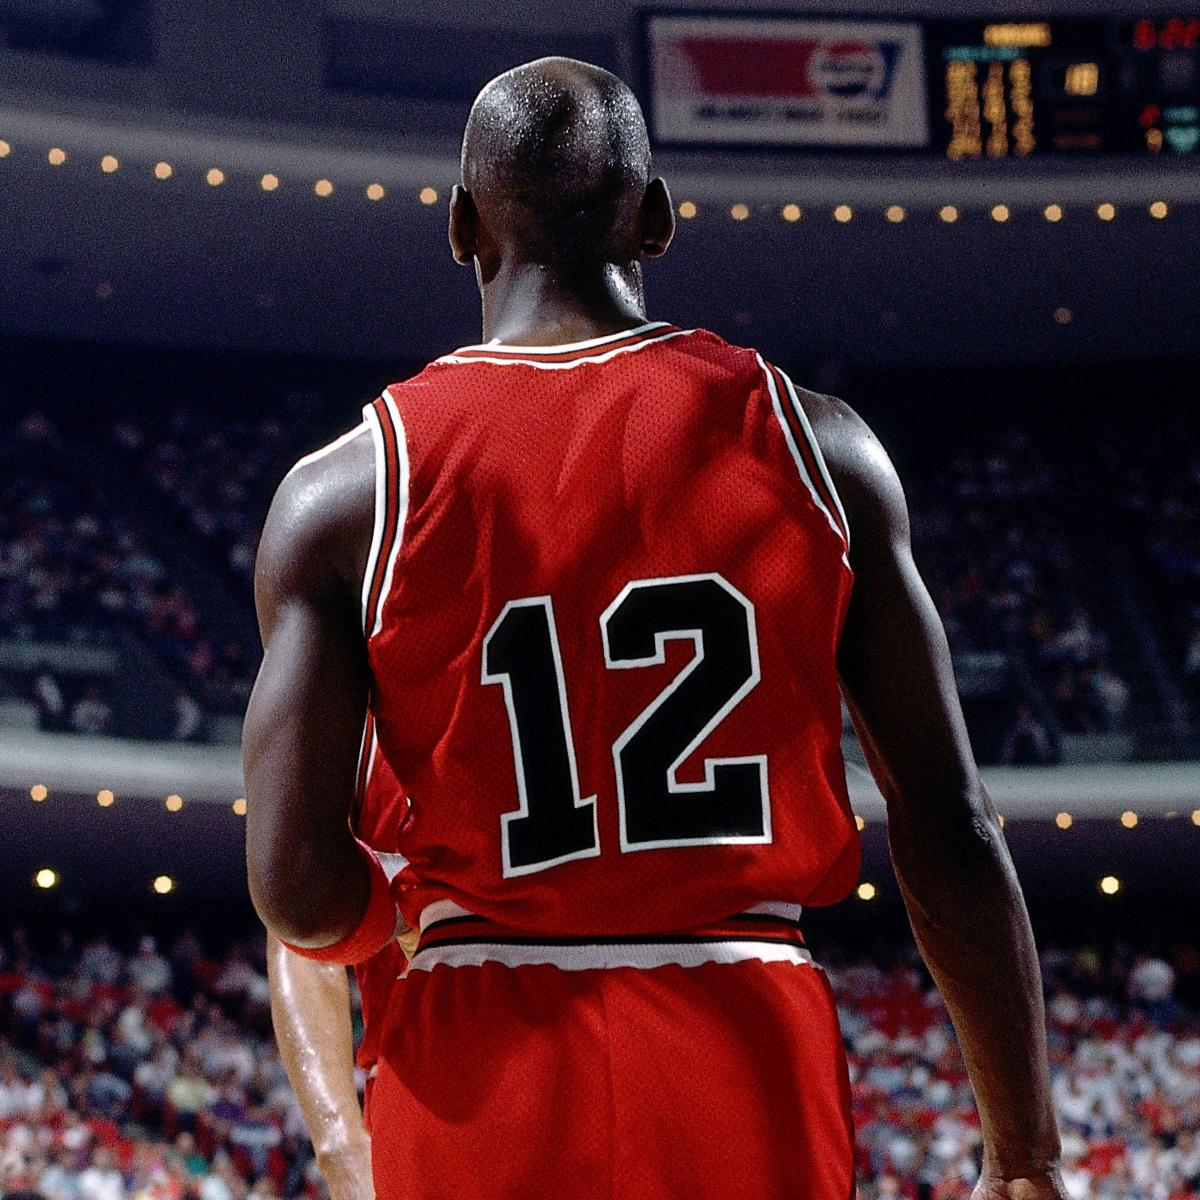 30 Years Ago Today Michael Jordan Switched His Classic No. 23 Jersey for No. 12